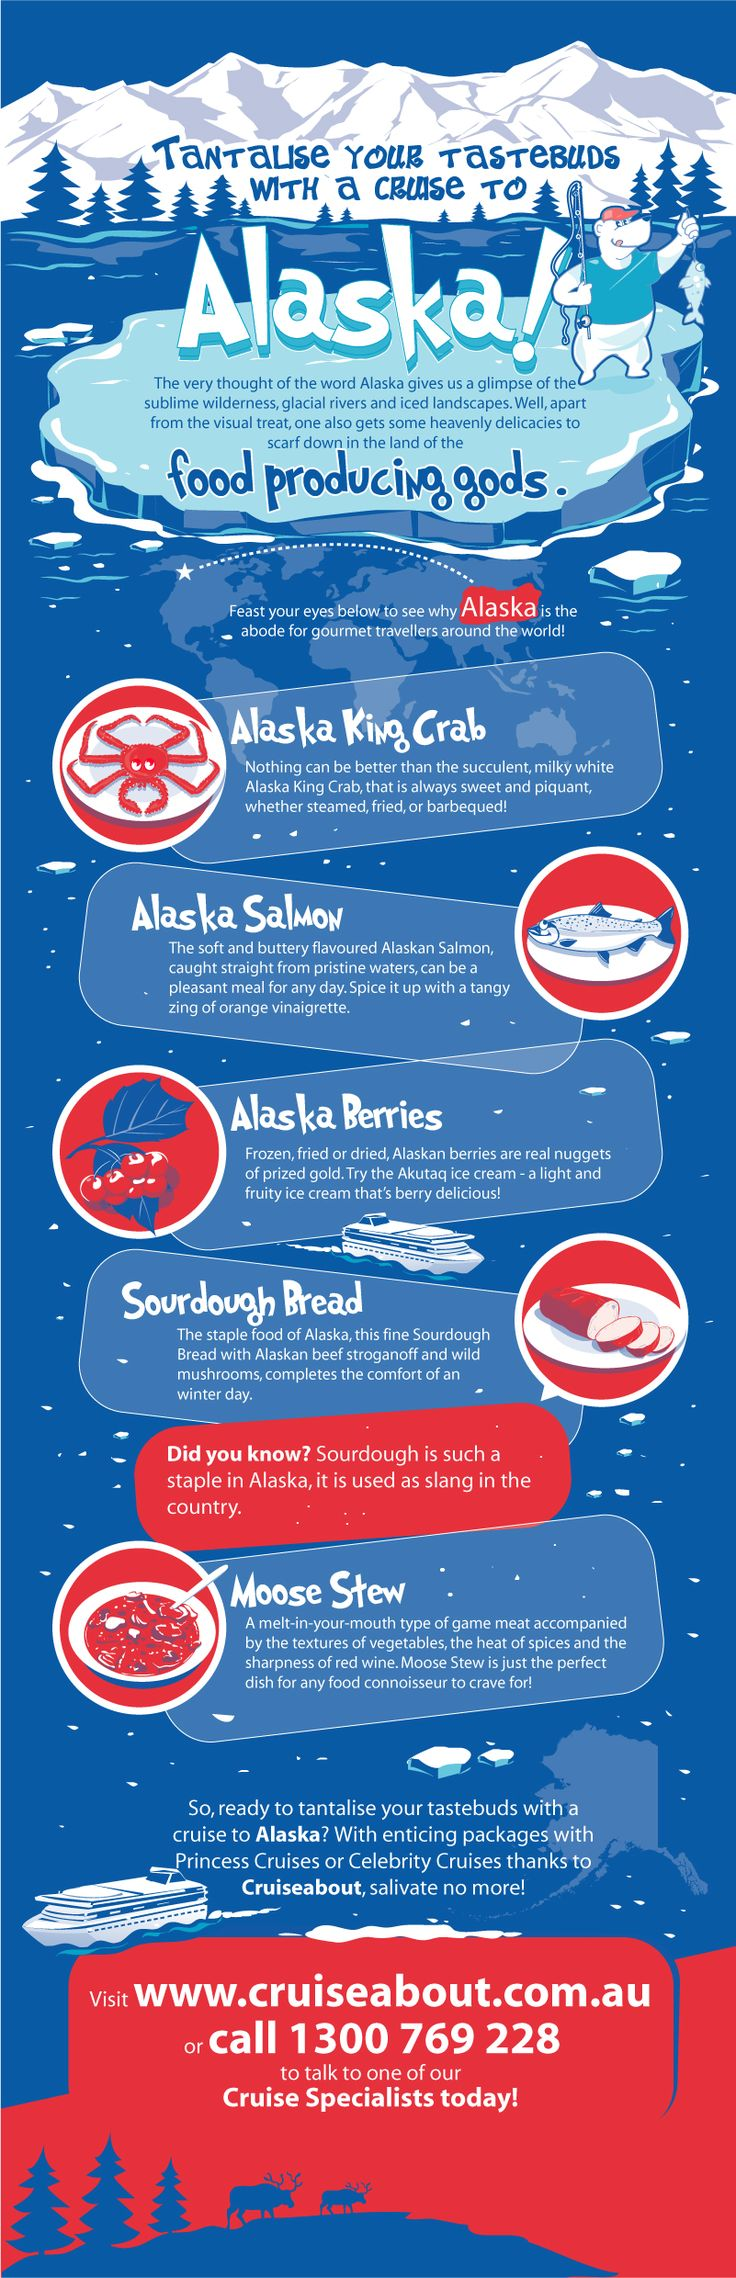 Tantalise your tastebuds with a #cruise to Alaska! #traveltips